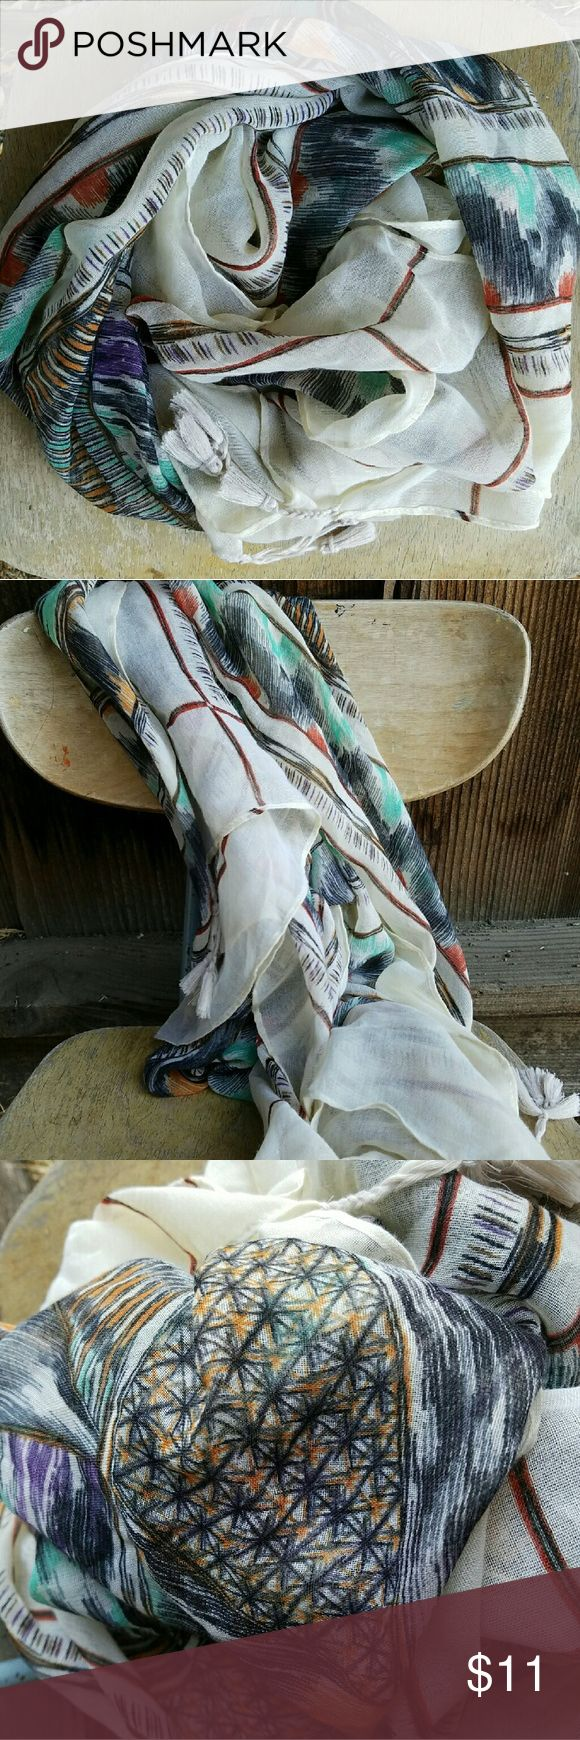 "Tribal print scarf with tassles Another great multicolor scarf that goes great with many different outfits. Tribal print with tan, aqua, brown, purple, and orange. ""Square"" scarf/wrap.  No tags. No Paypal, please. Fee free to make an offer! Accessories Scarves & Wraps"